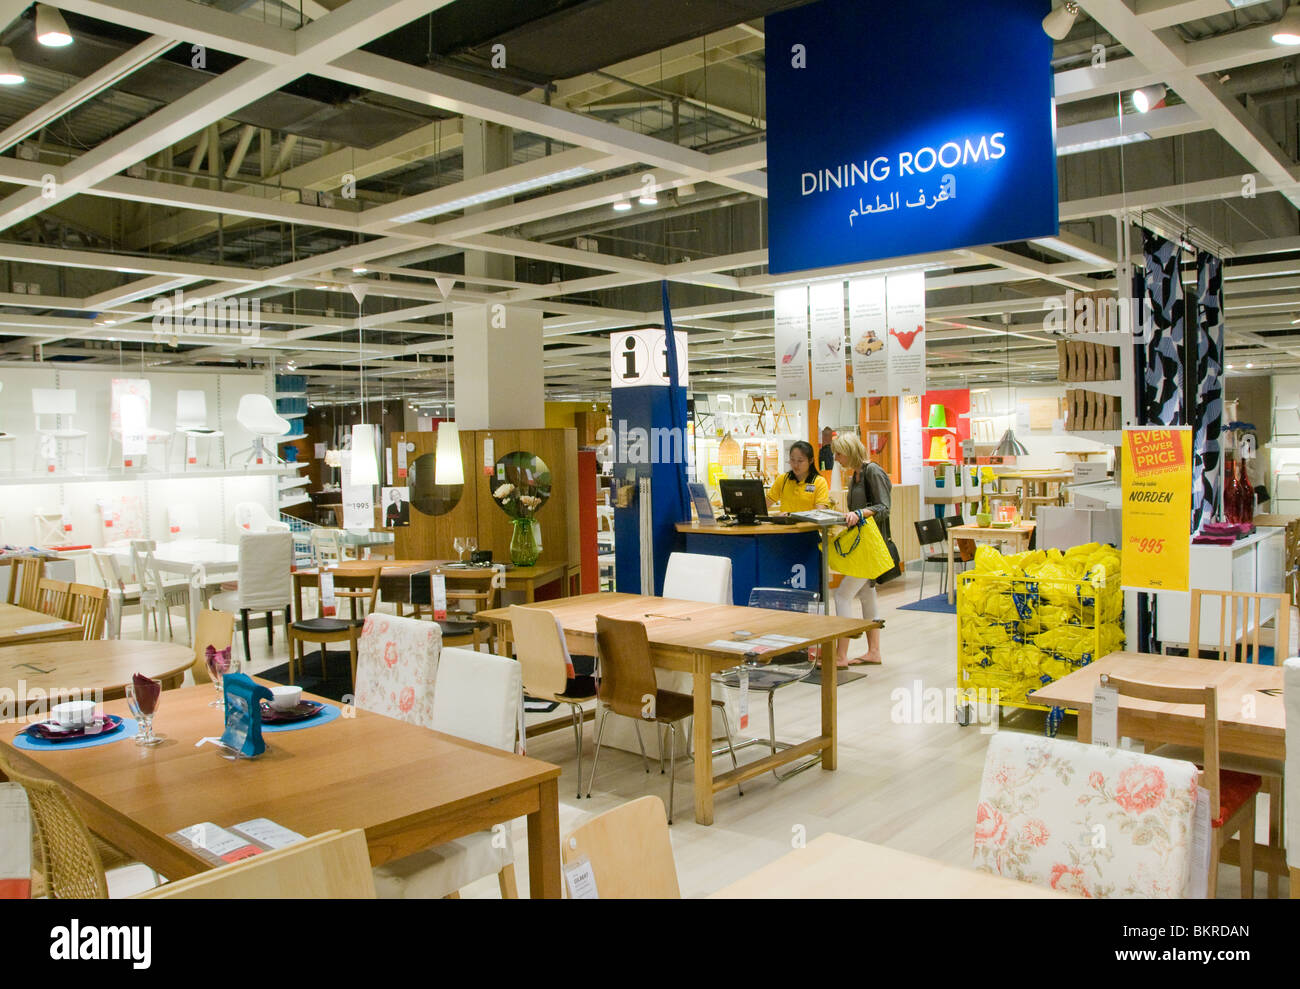 Dining Rooms Department At Ikea Home Furnishing Store In Dubai